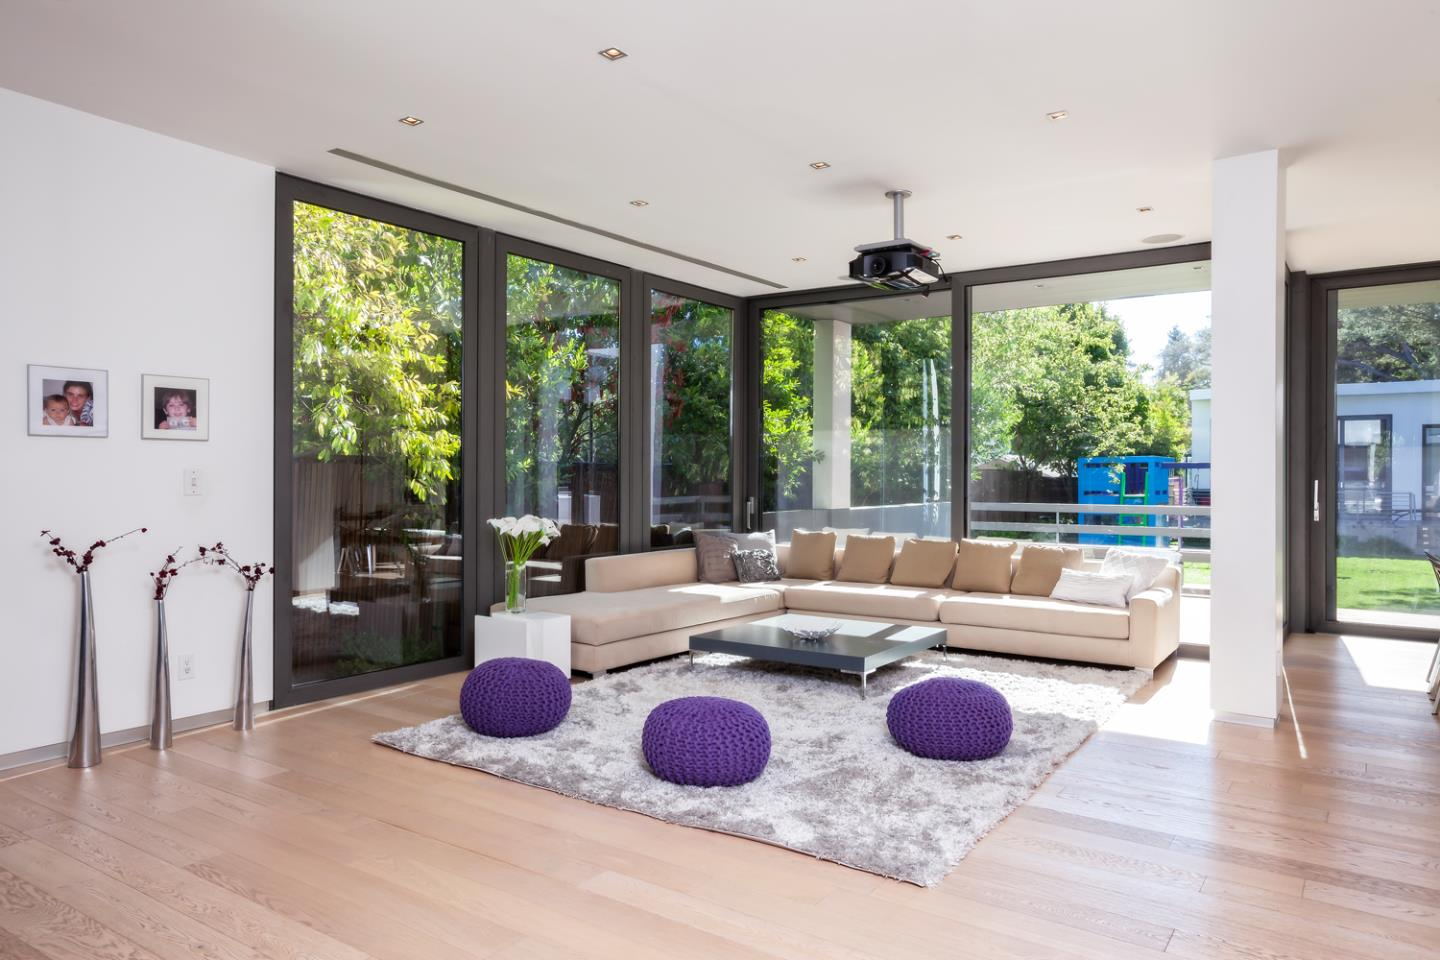 Additional photo for property listing at 925 Addison Ave  PALO ALTO, CALIFORNIA 94301